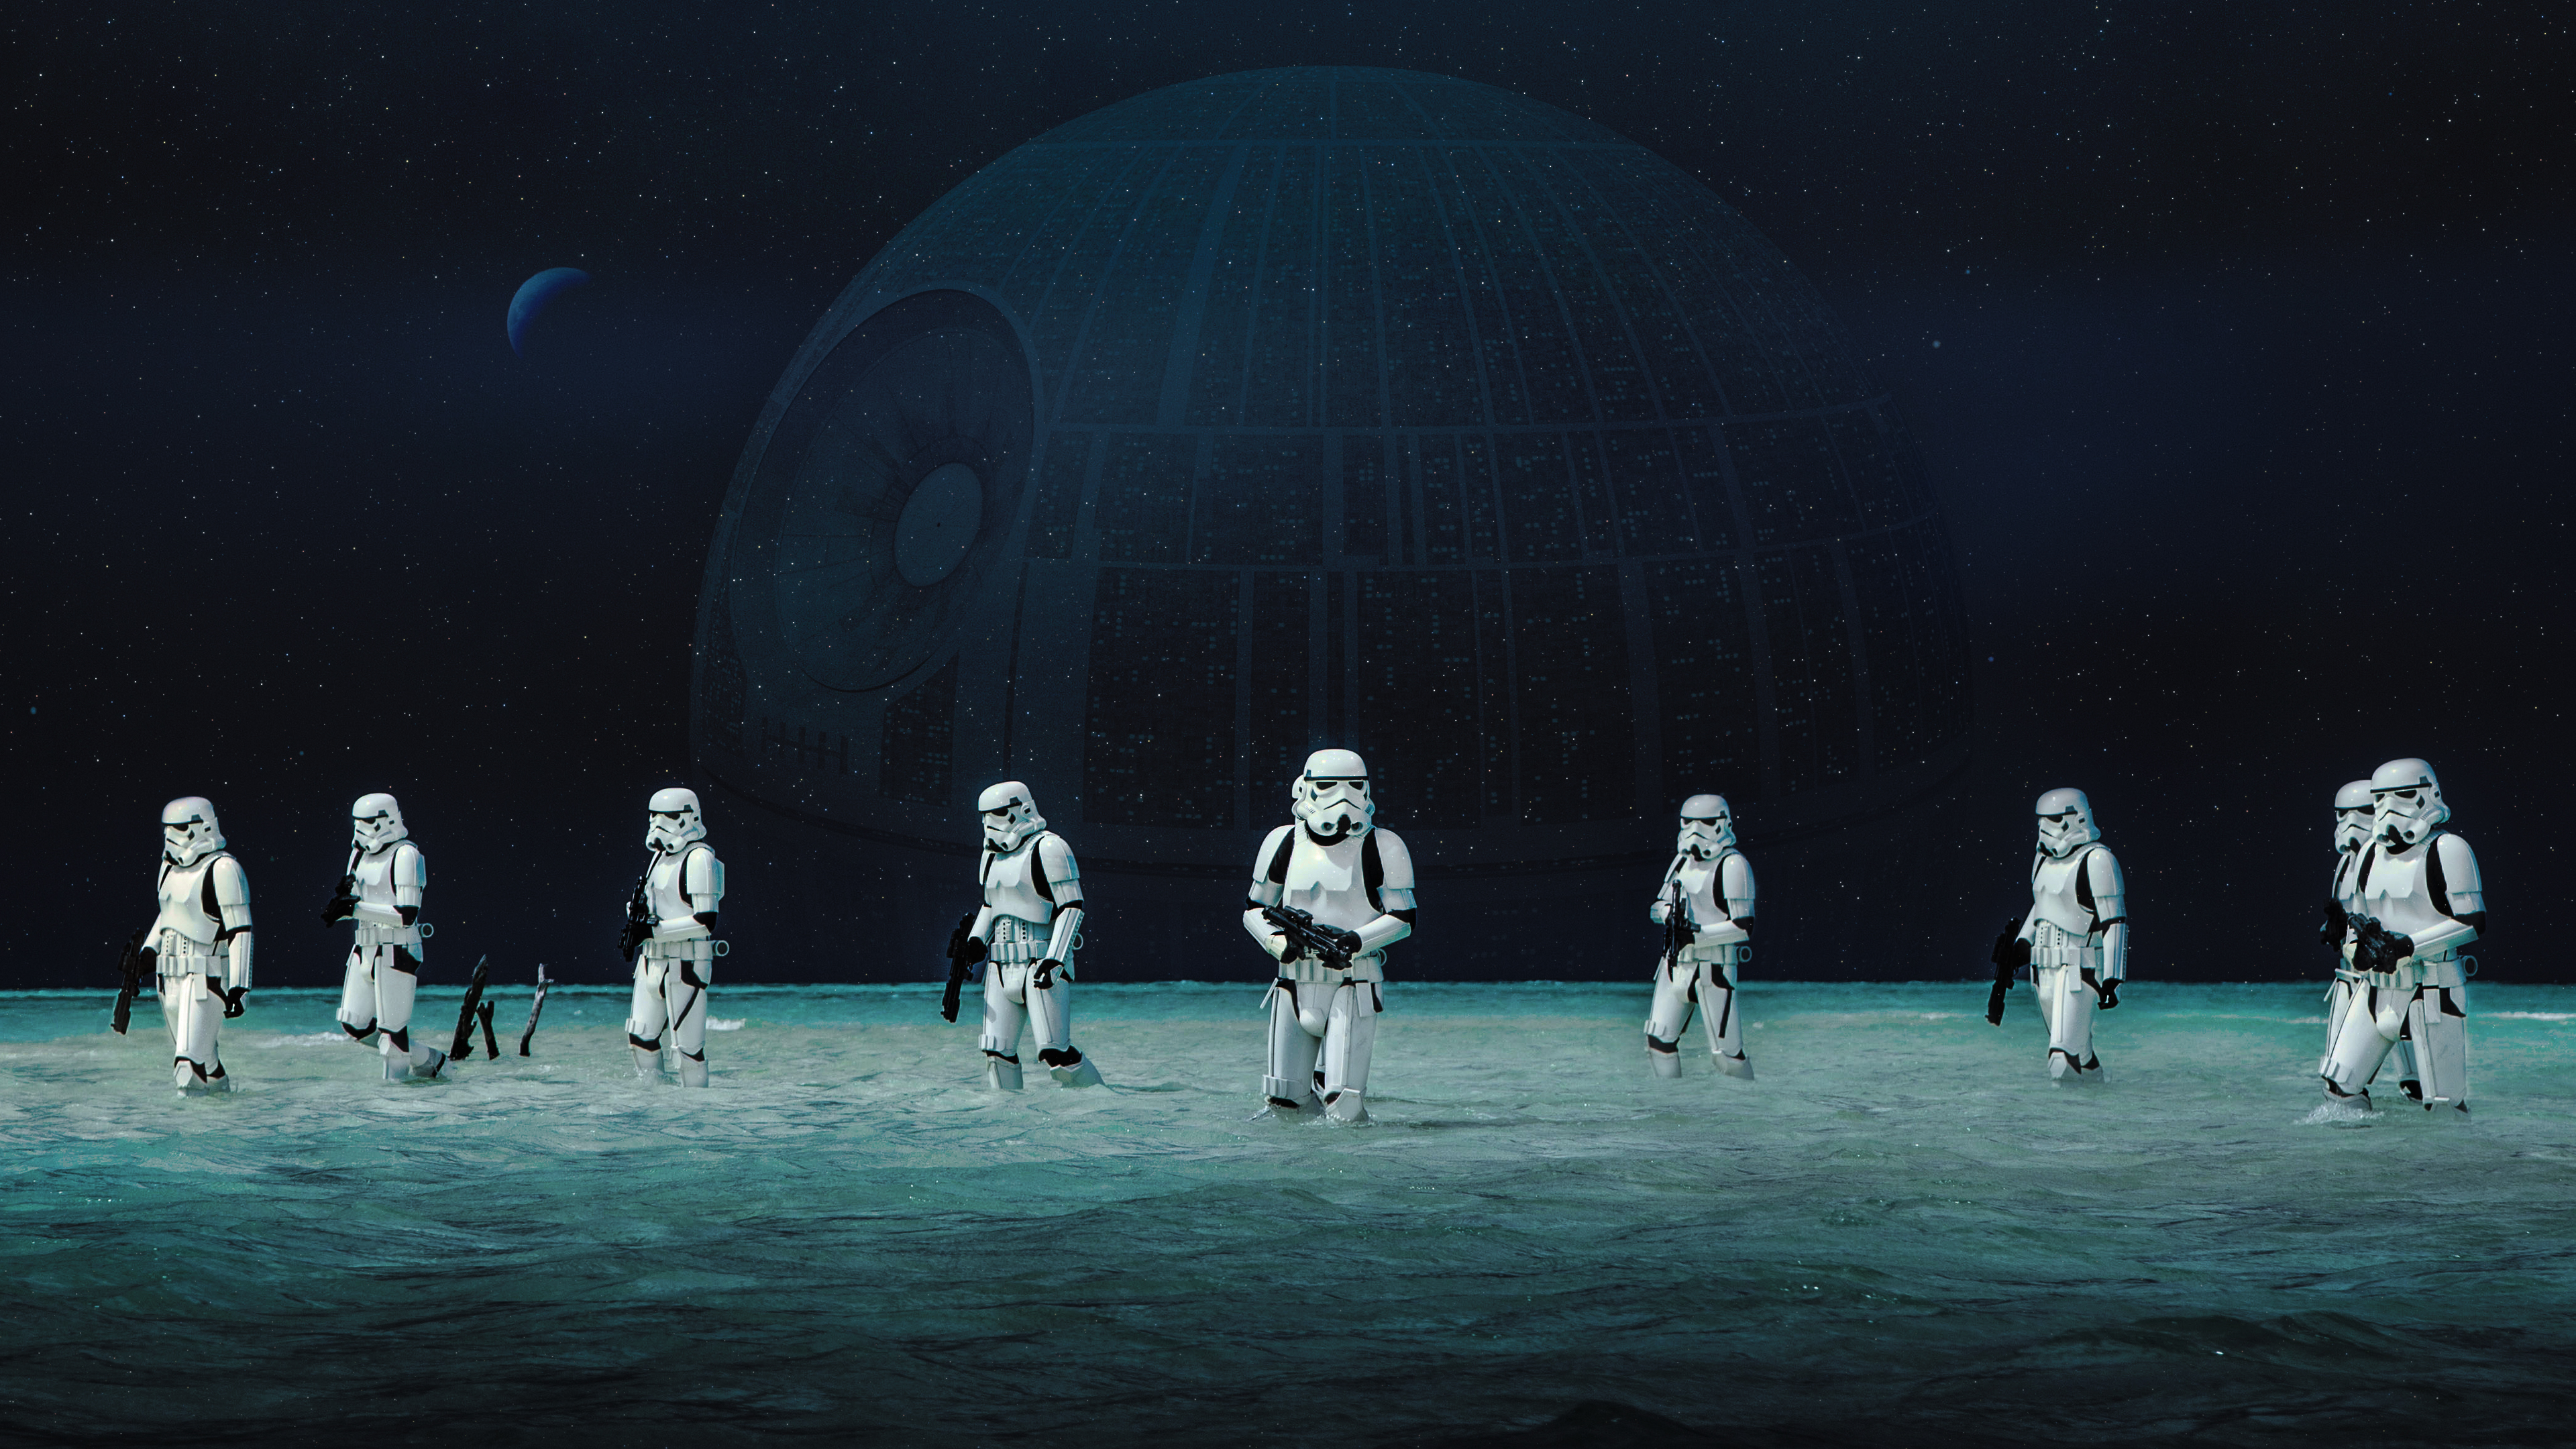 free star wars: rogue one chromebook wallpaper ready for download